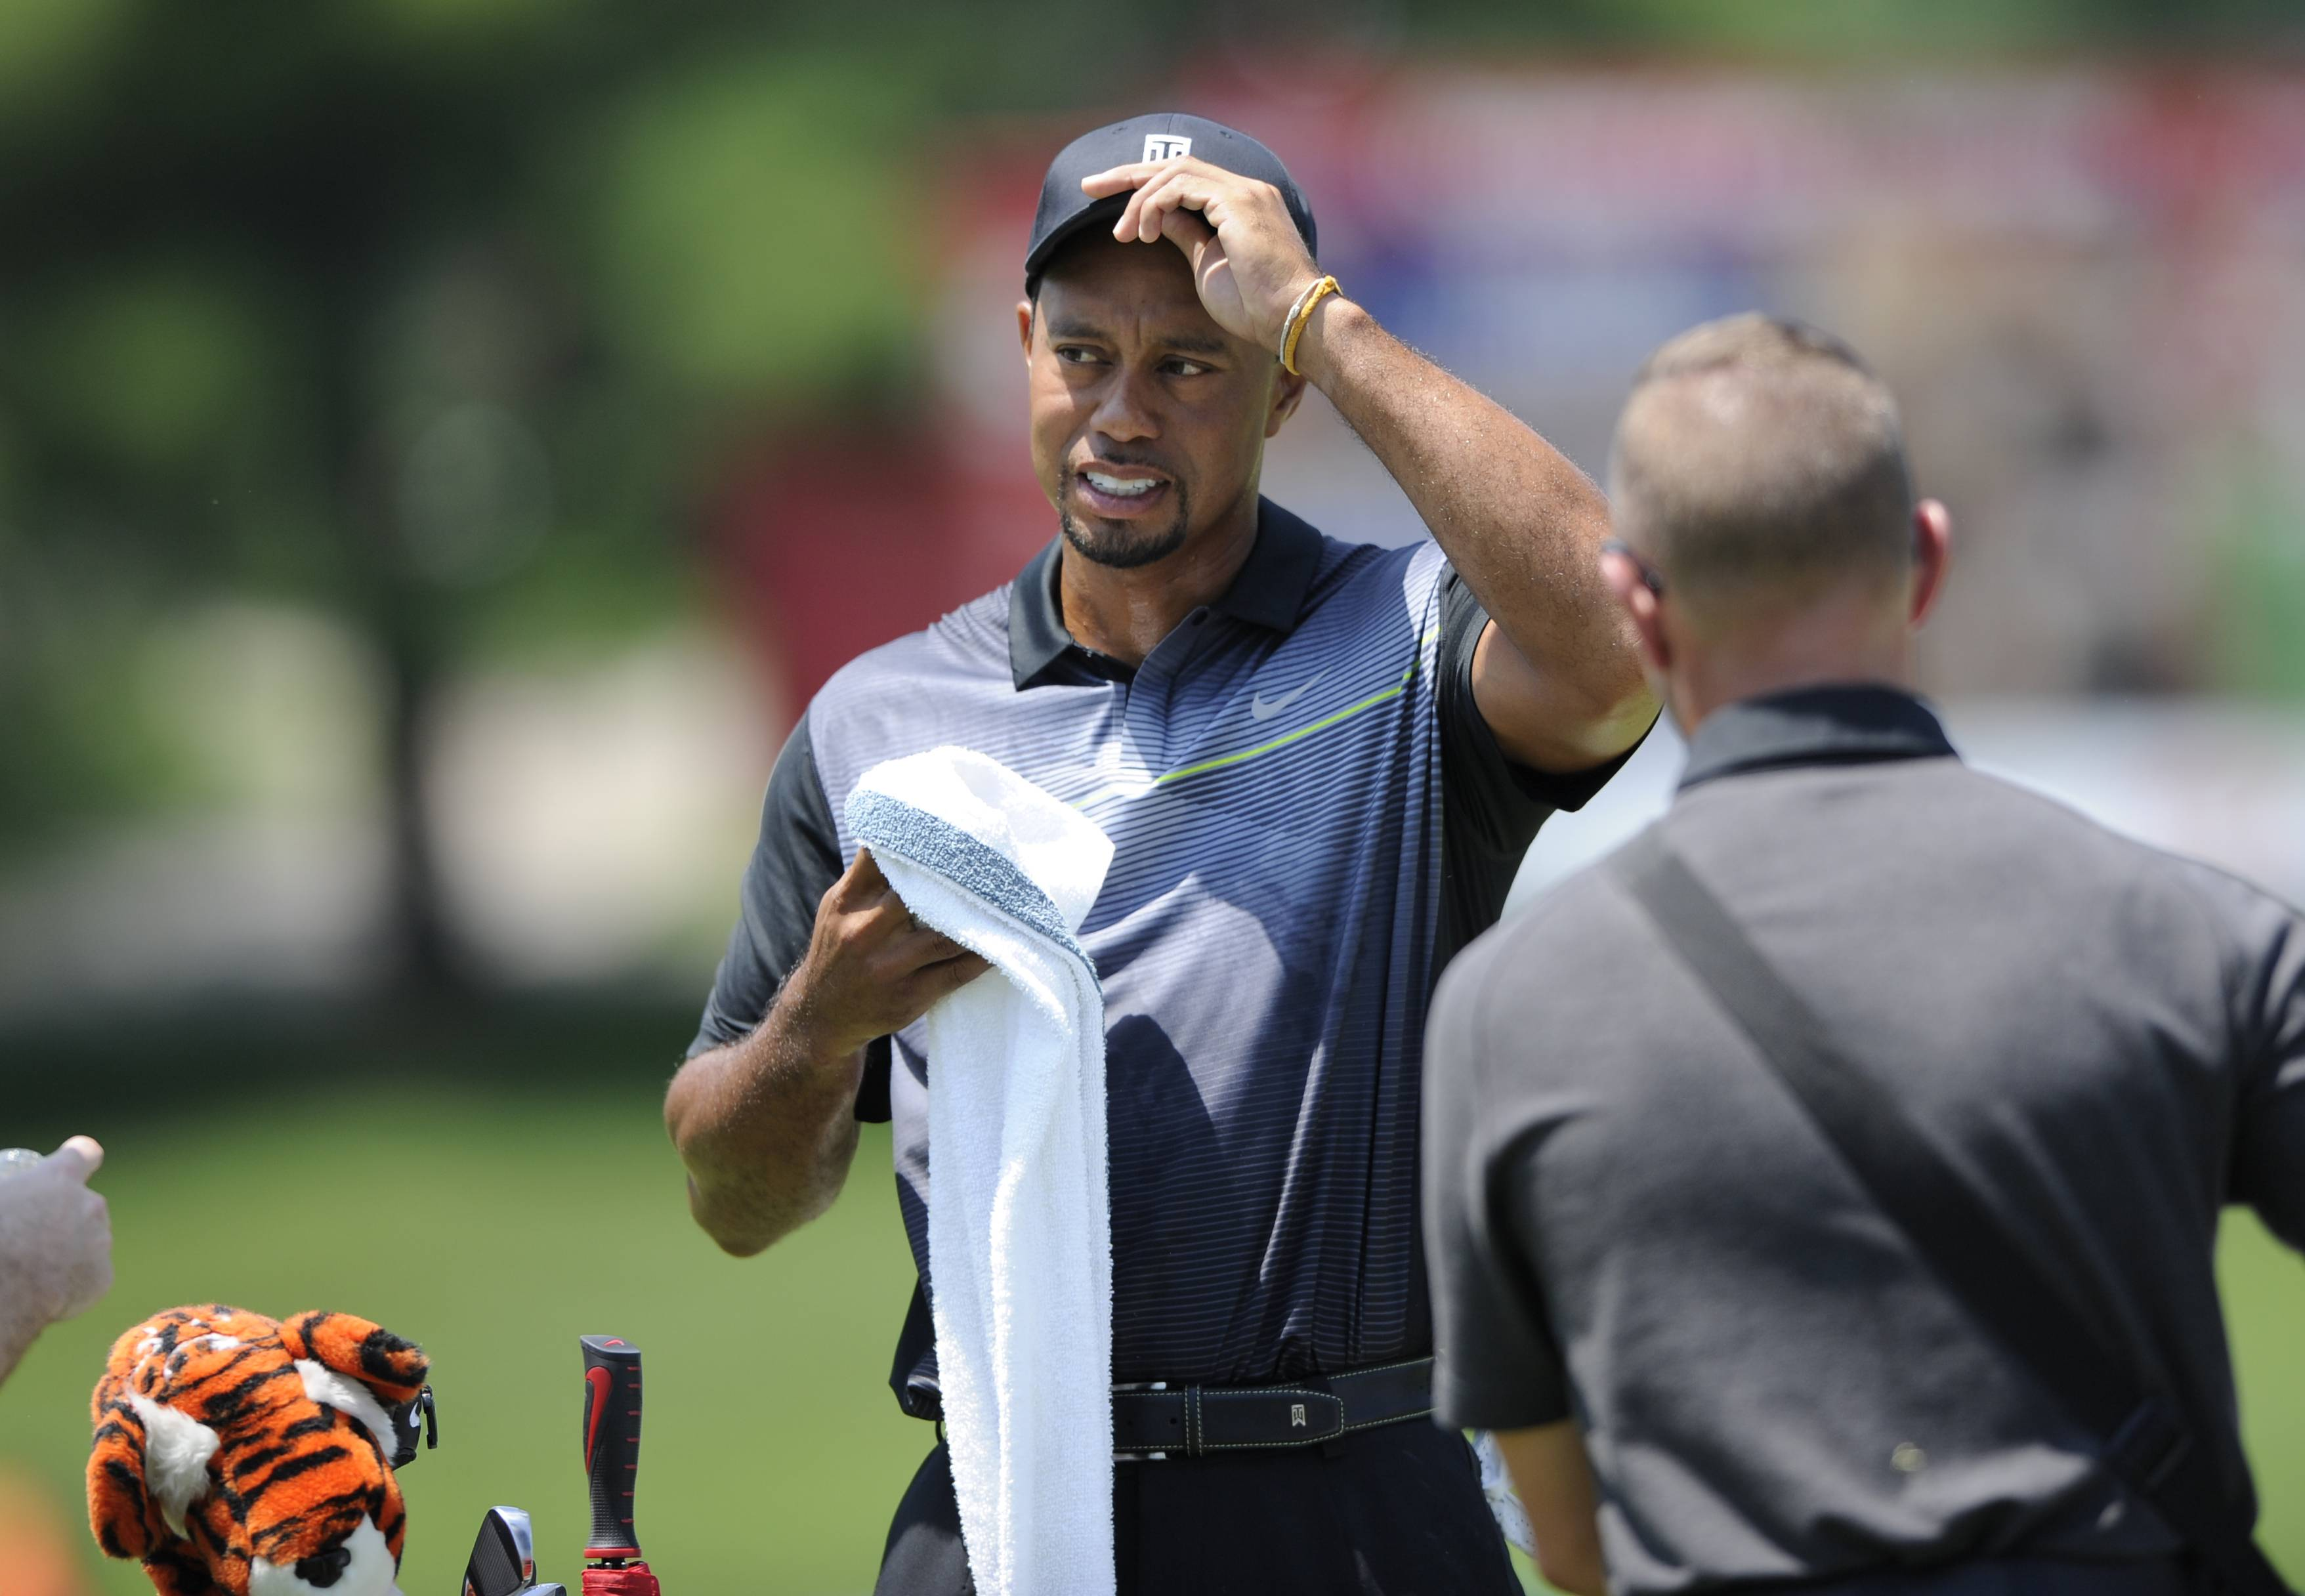 Tiger Woods was back in action Tuesday as he practiced at the Quicken Loans National golf tournament in Bethesda, Md.